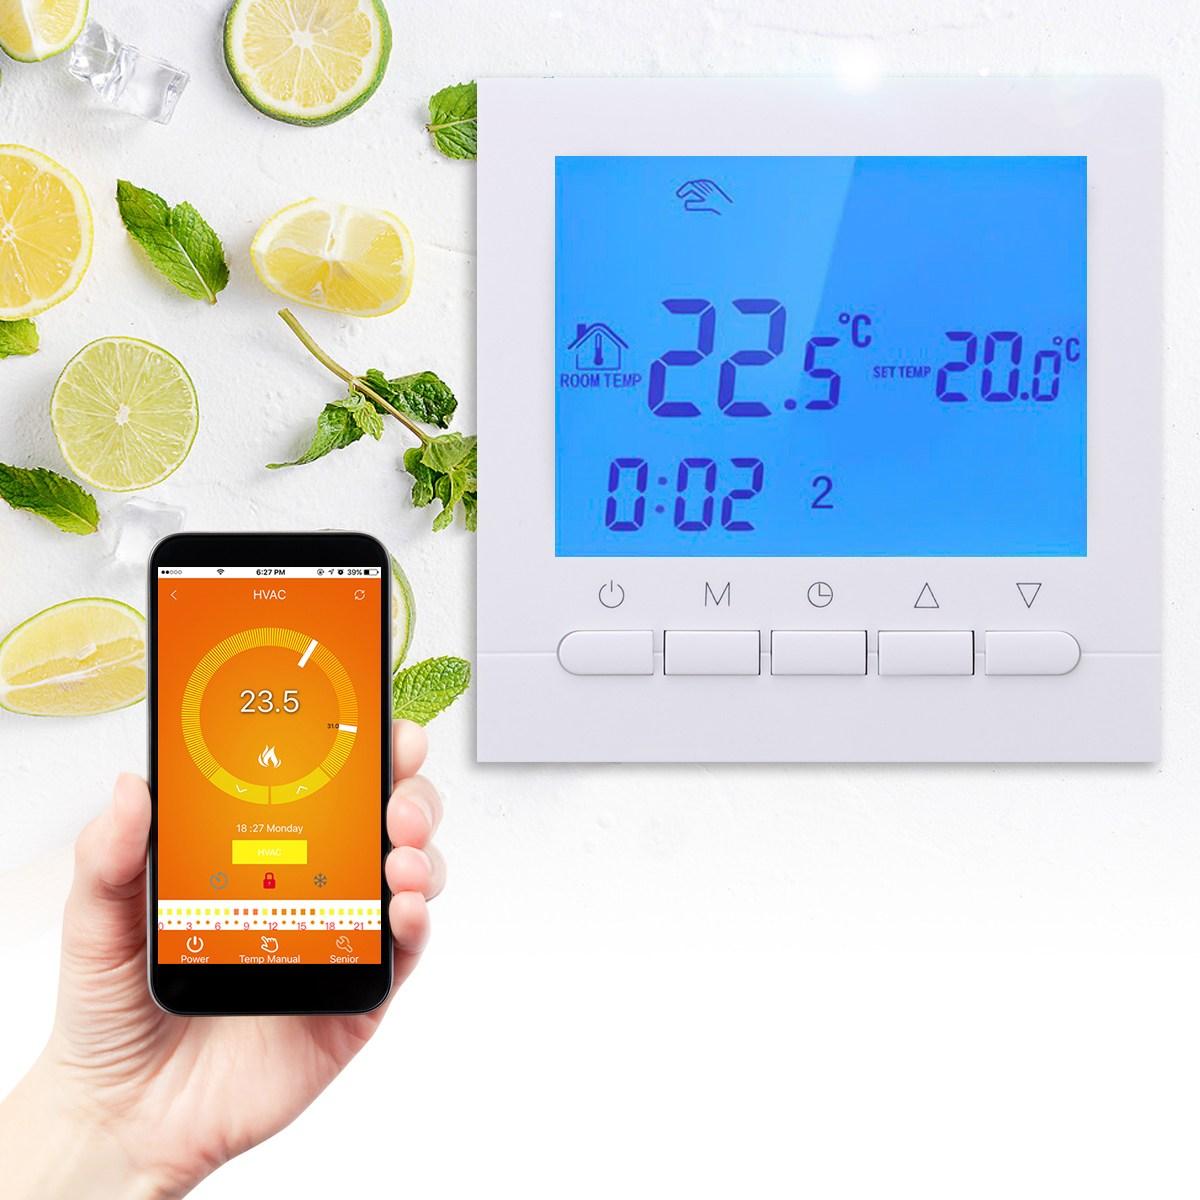 WIFI Control Thermoregulator Programmable Temperature Controller Wireless Thermostat Underfloor Electric Heating App Control taie fy700 thermostat temperature control table fy700 301000